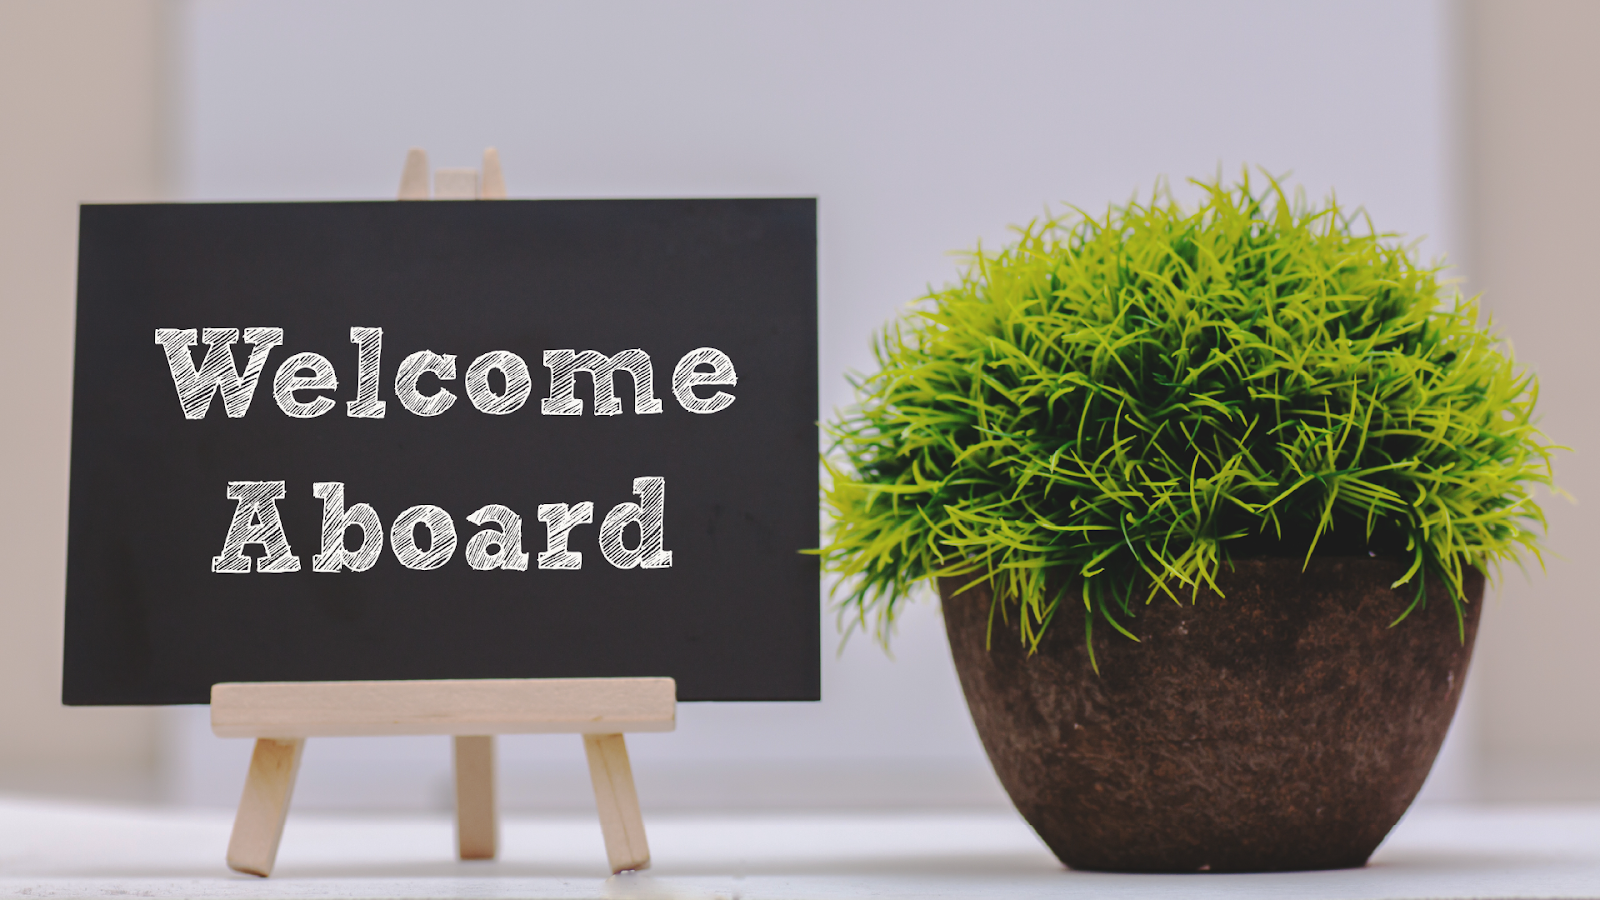 Agency employees onboarding best practices